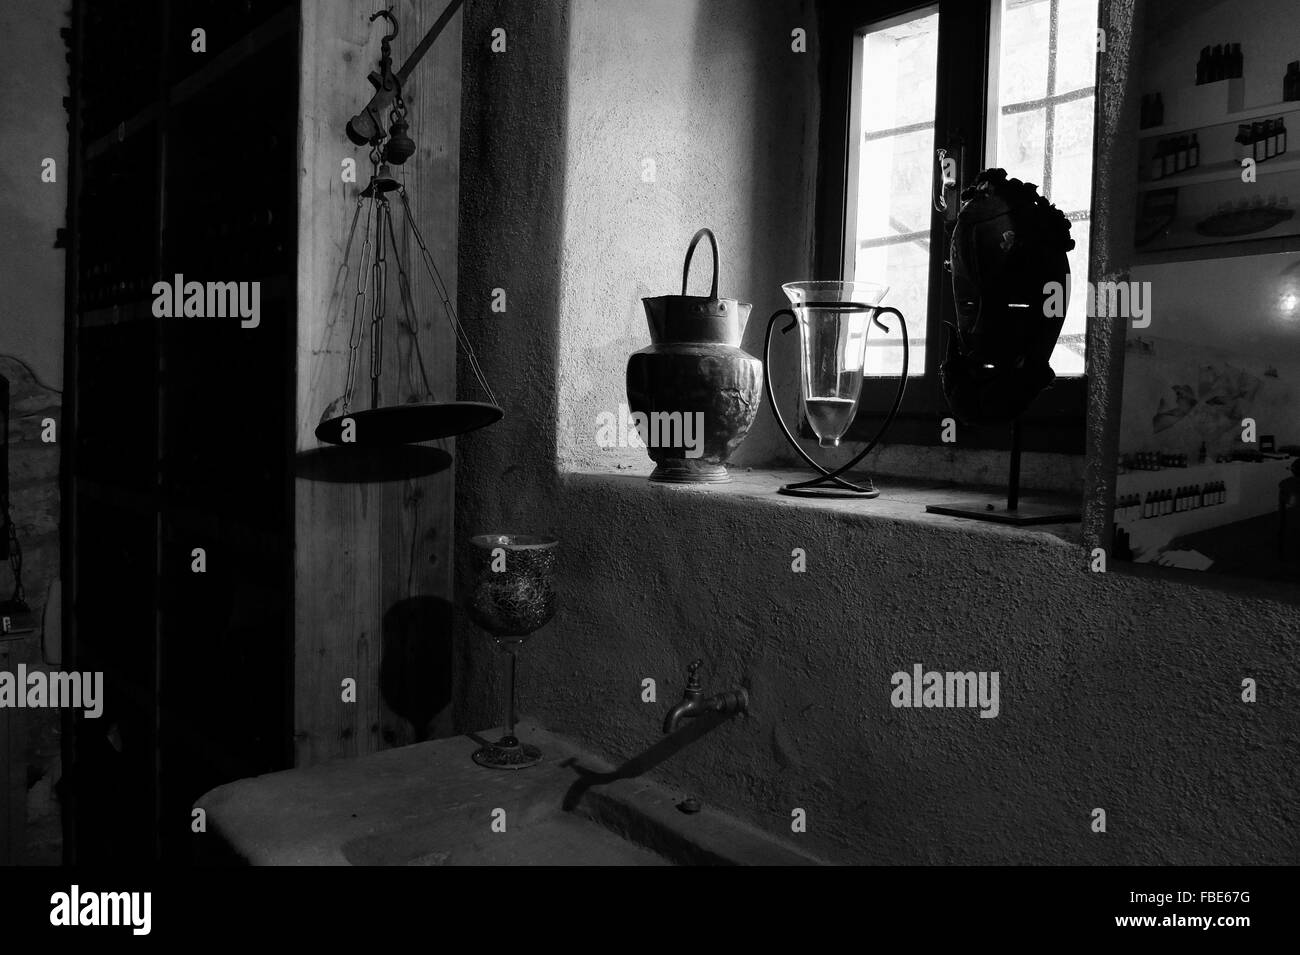 Container And Vase On Window - Stock Image